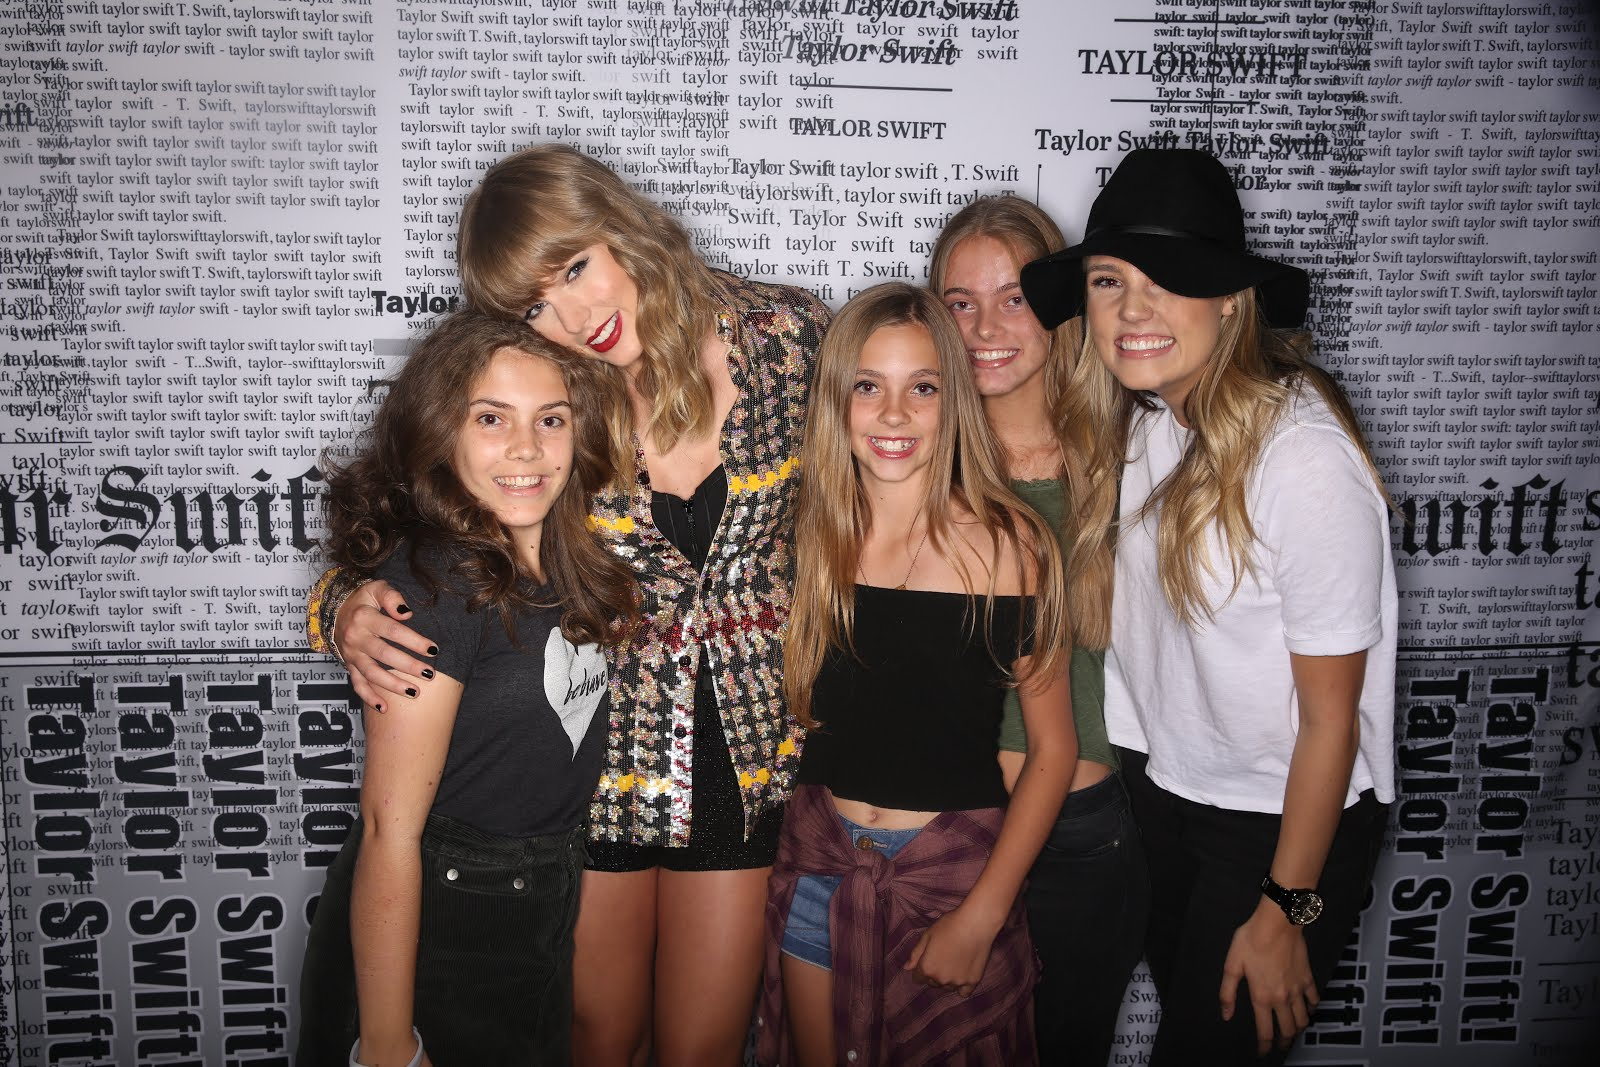 Mia & Sisters Meet Taylor Swift!